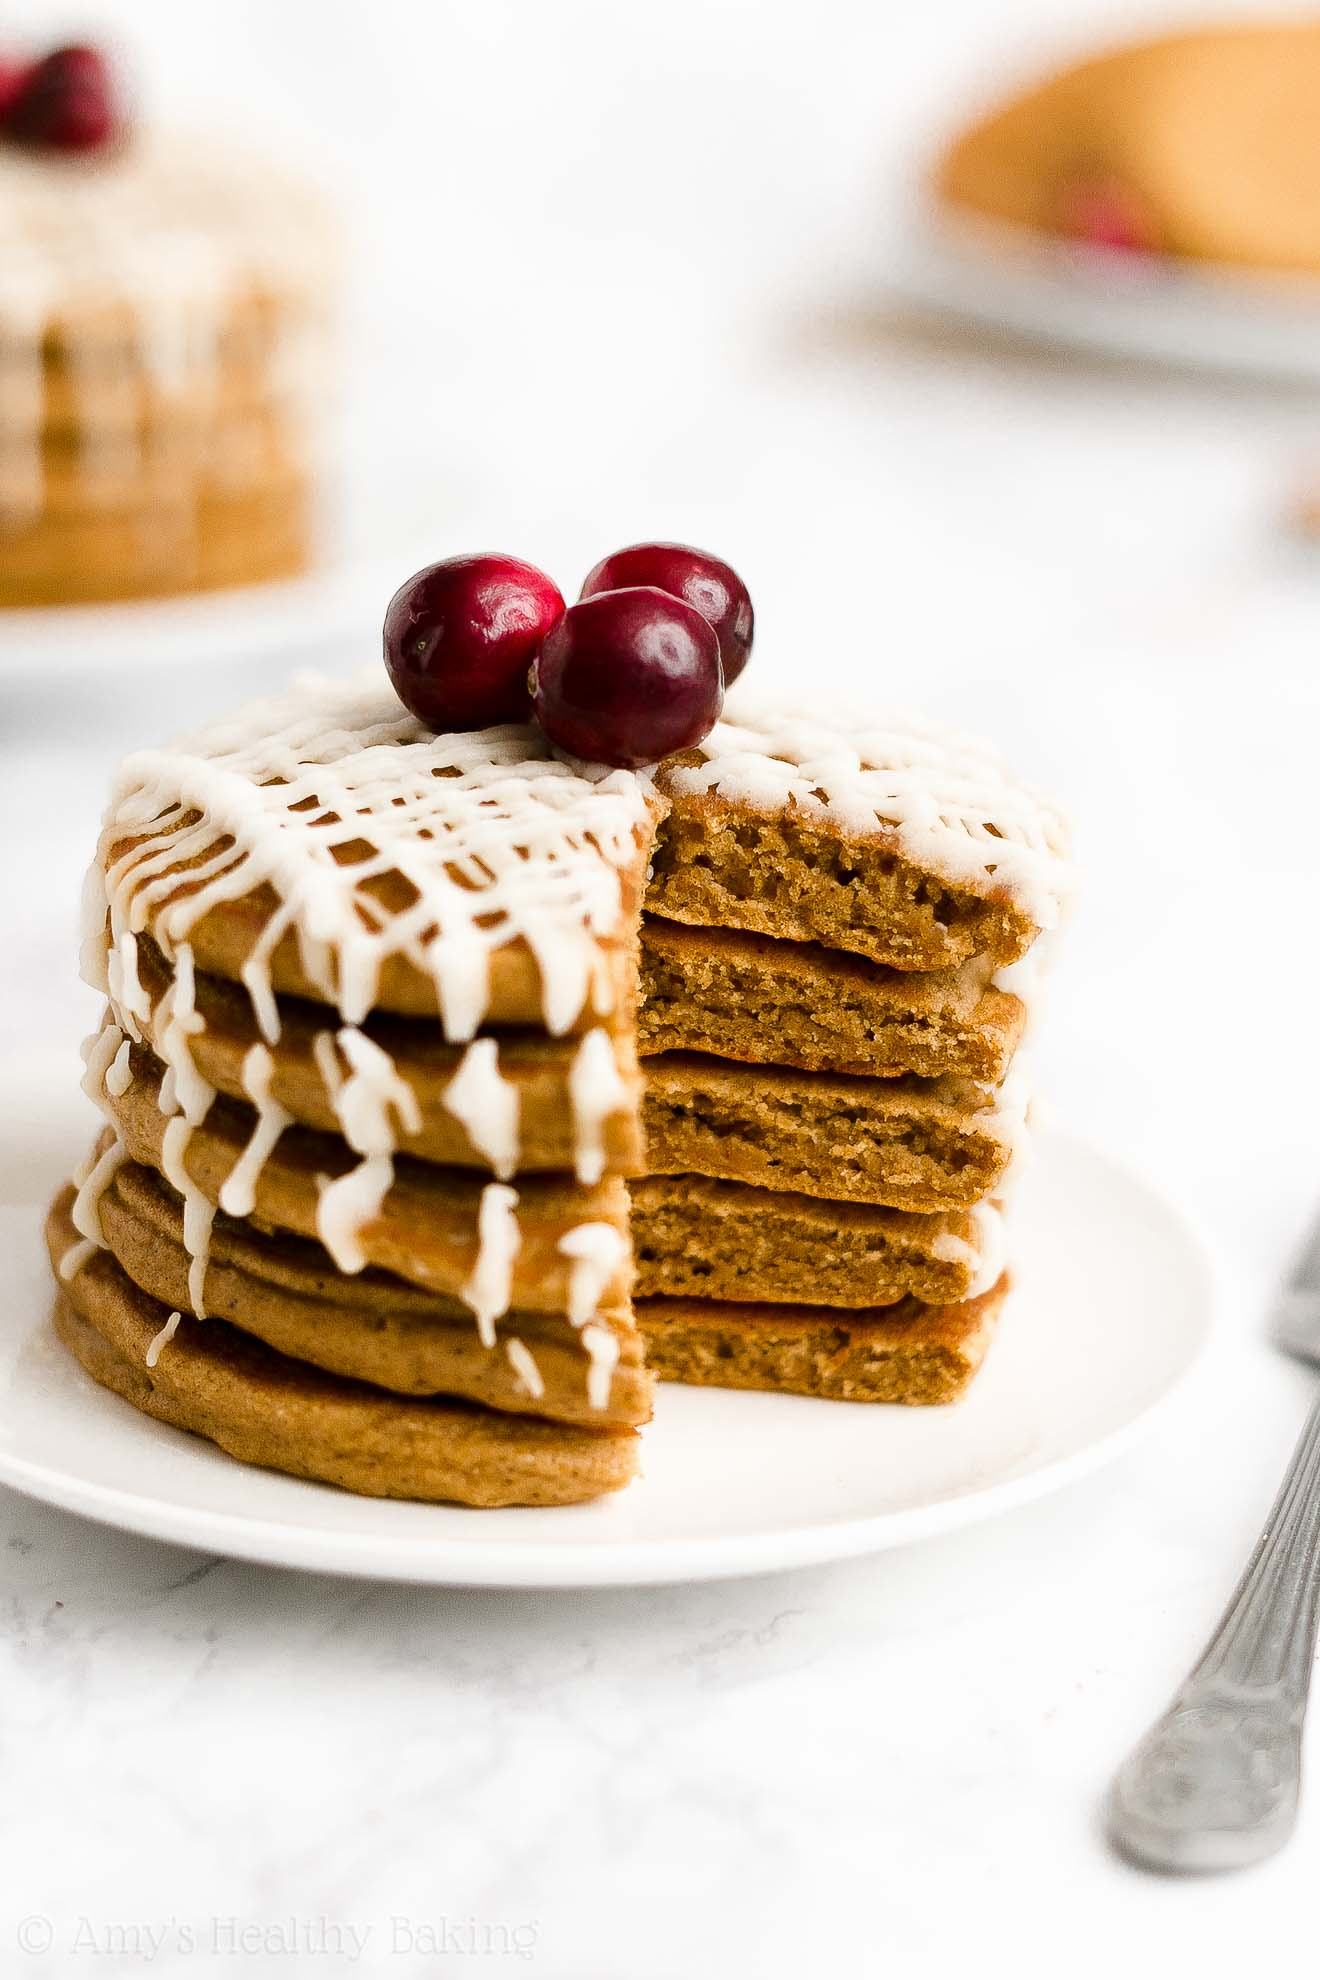 BEST EVER Easy Healthy Low Sugar Greek Yogurt Fluffy Gingerbread Pancakes